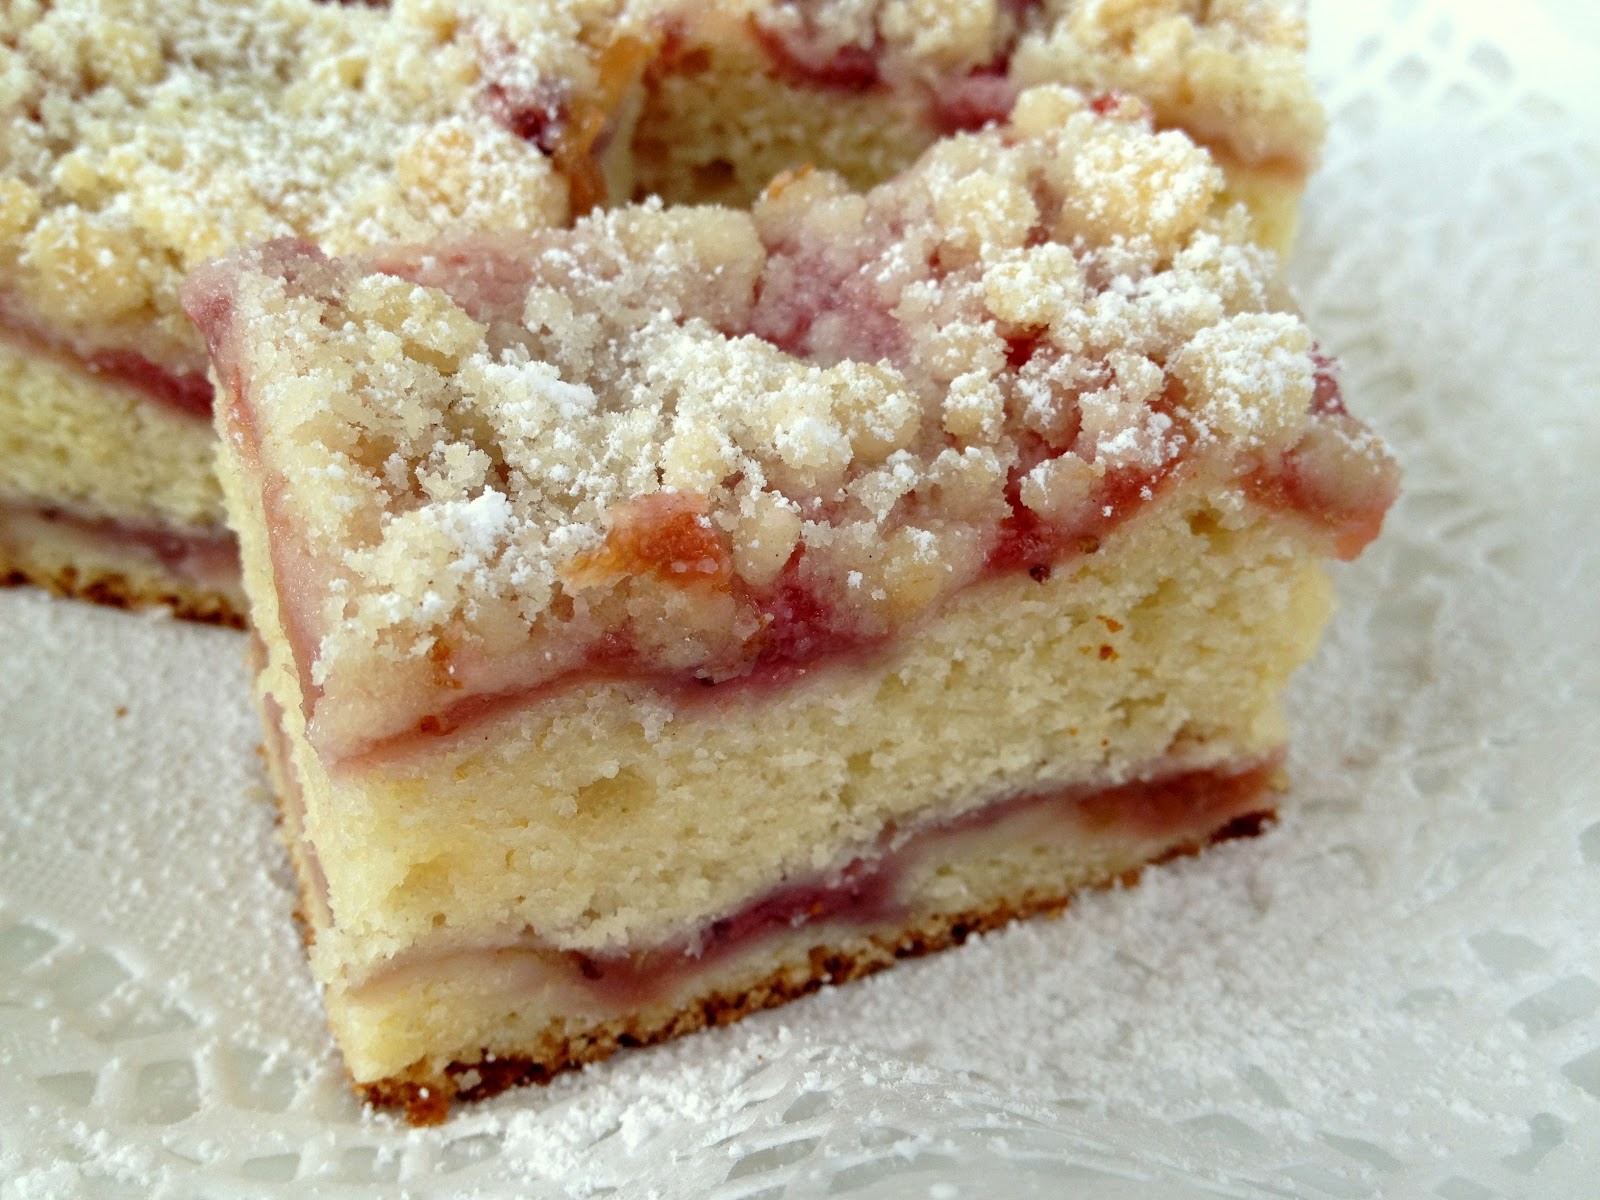 Jennuine by Rook No. 17*: The Best Strawberry-Rhubarb Crumb Cake